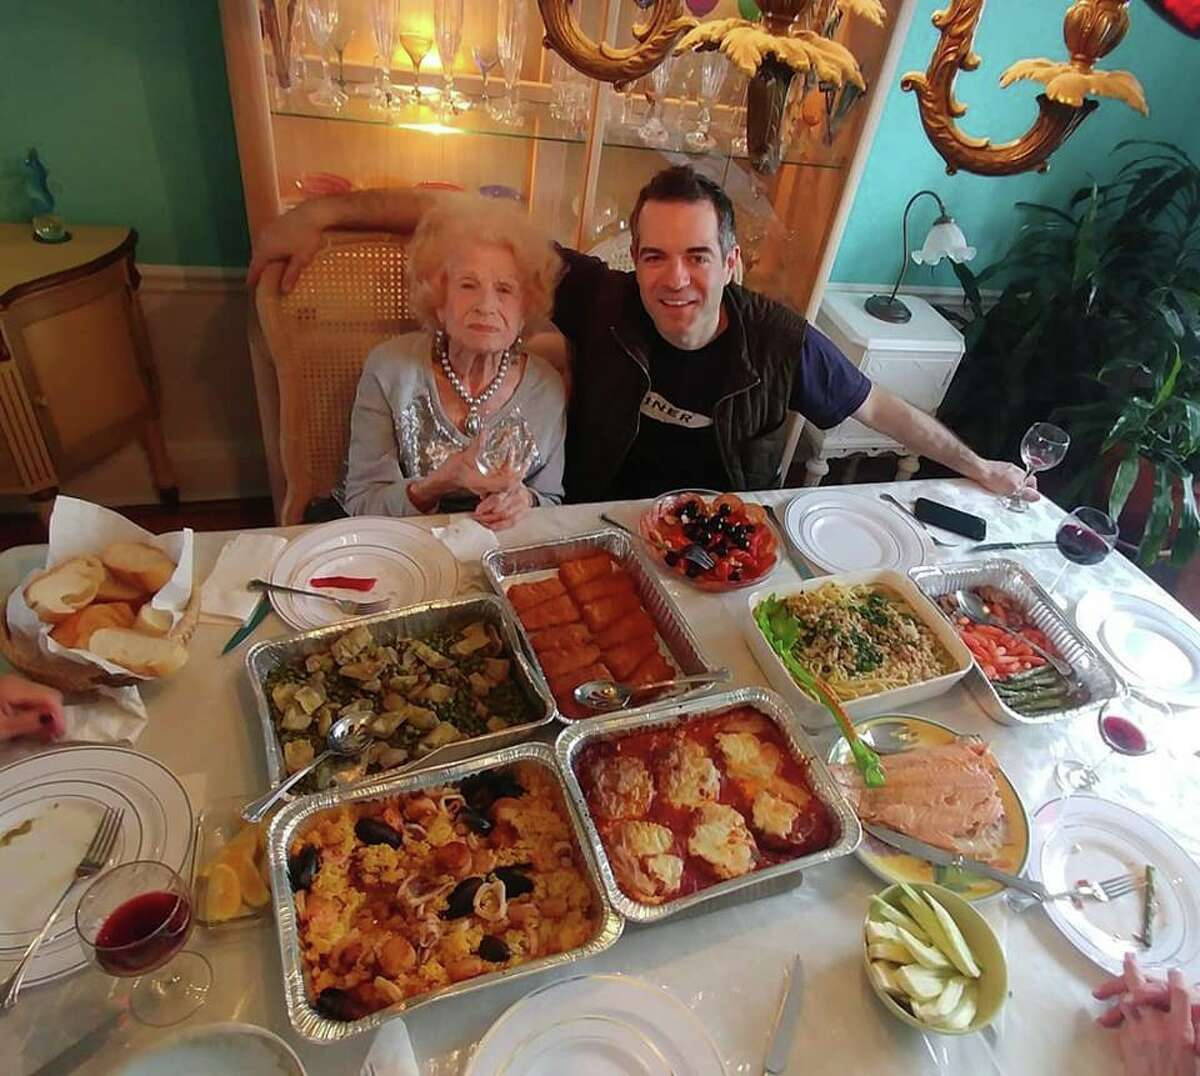 2. I travel to Brooklyn on Sundays for my grandma's cooking.